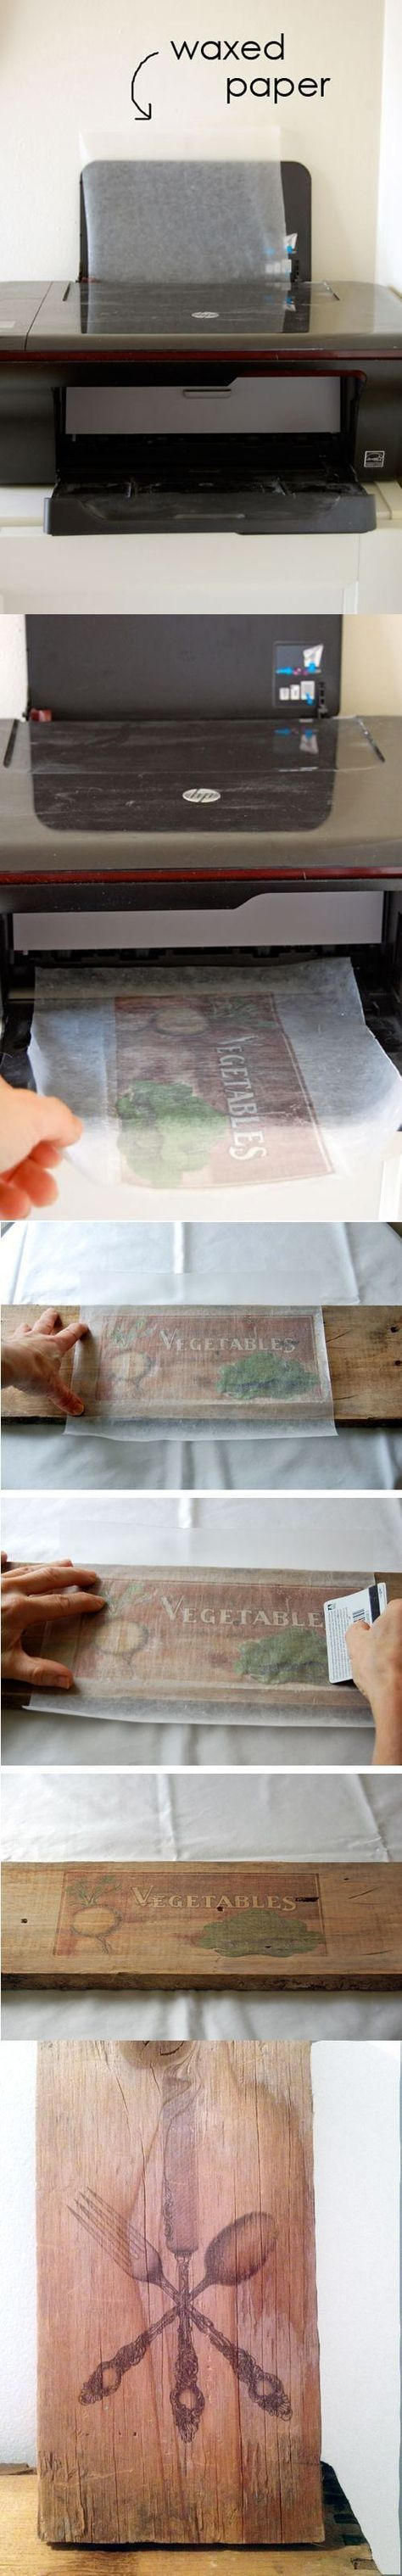 42 Craft Project Ideas That are Easy to Make and Sell - Big DIY IDeas